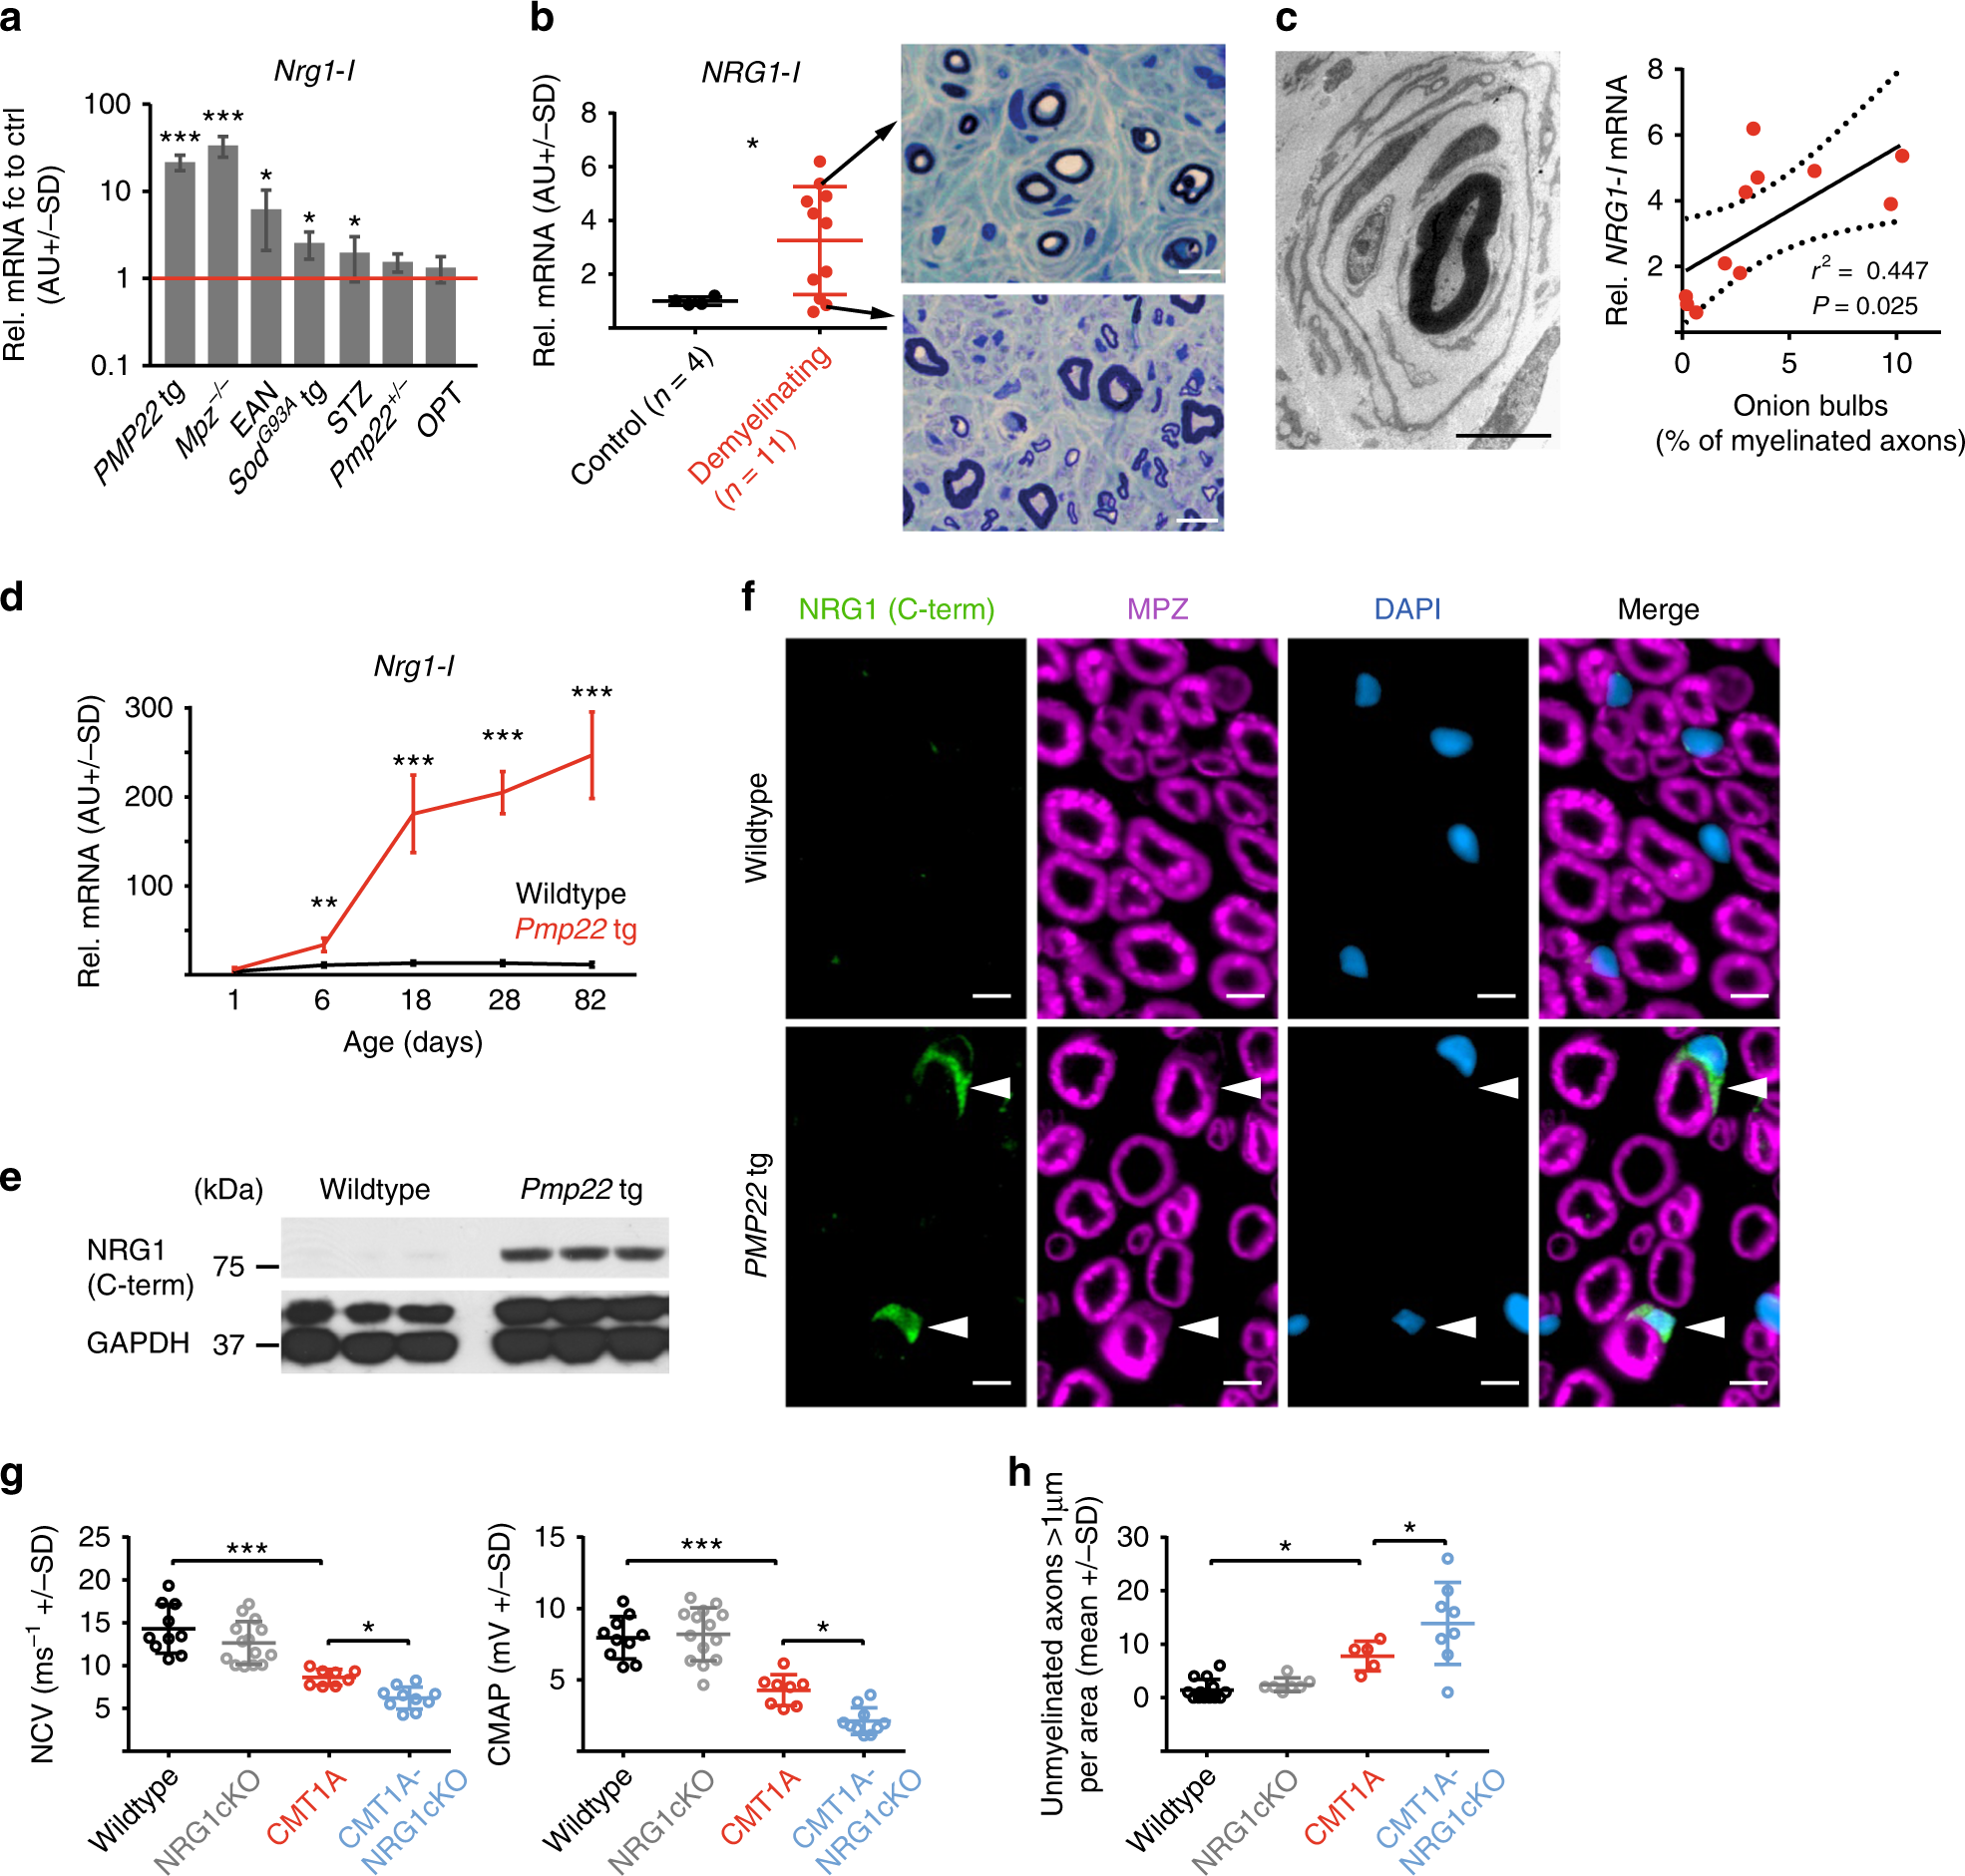 nrg1 type i dependent autoparacrine stimulation of schwann cells in onion  bulbs of peripheral neuropathies | nature communications